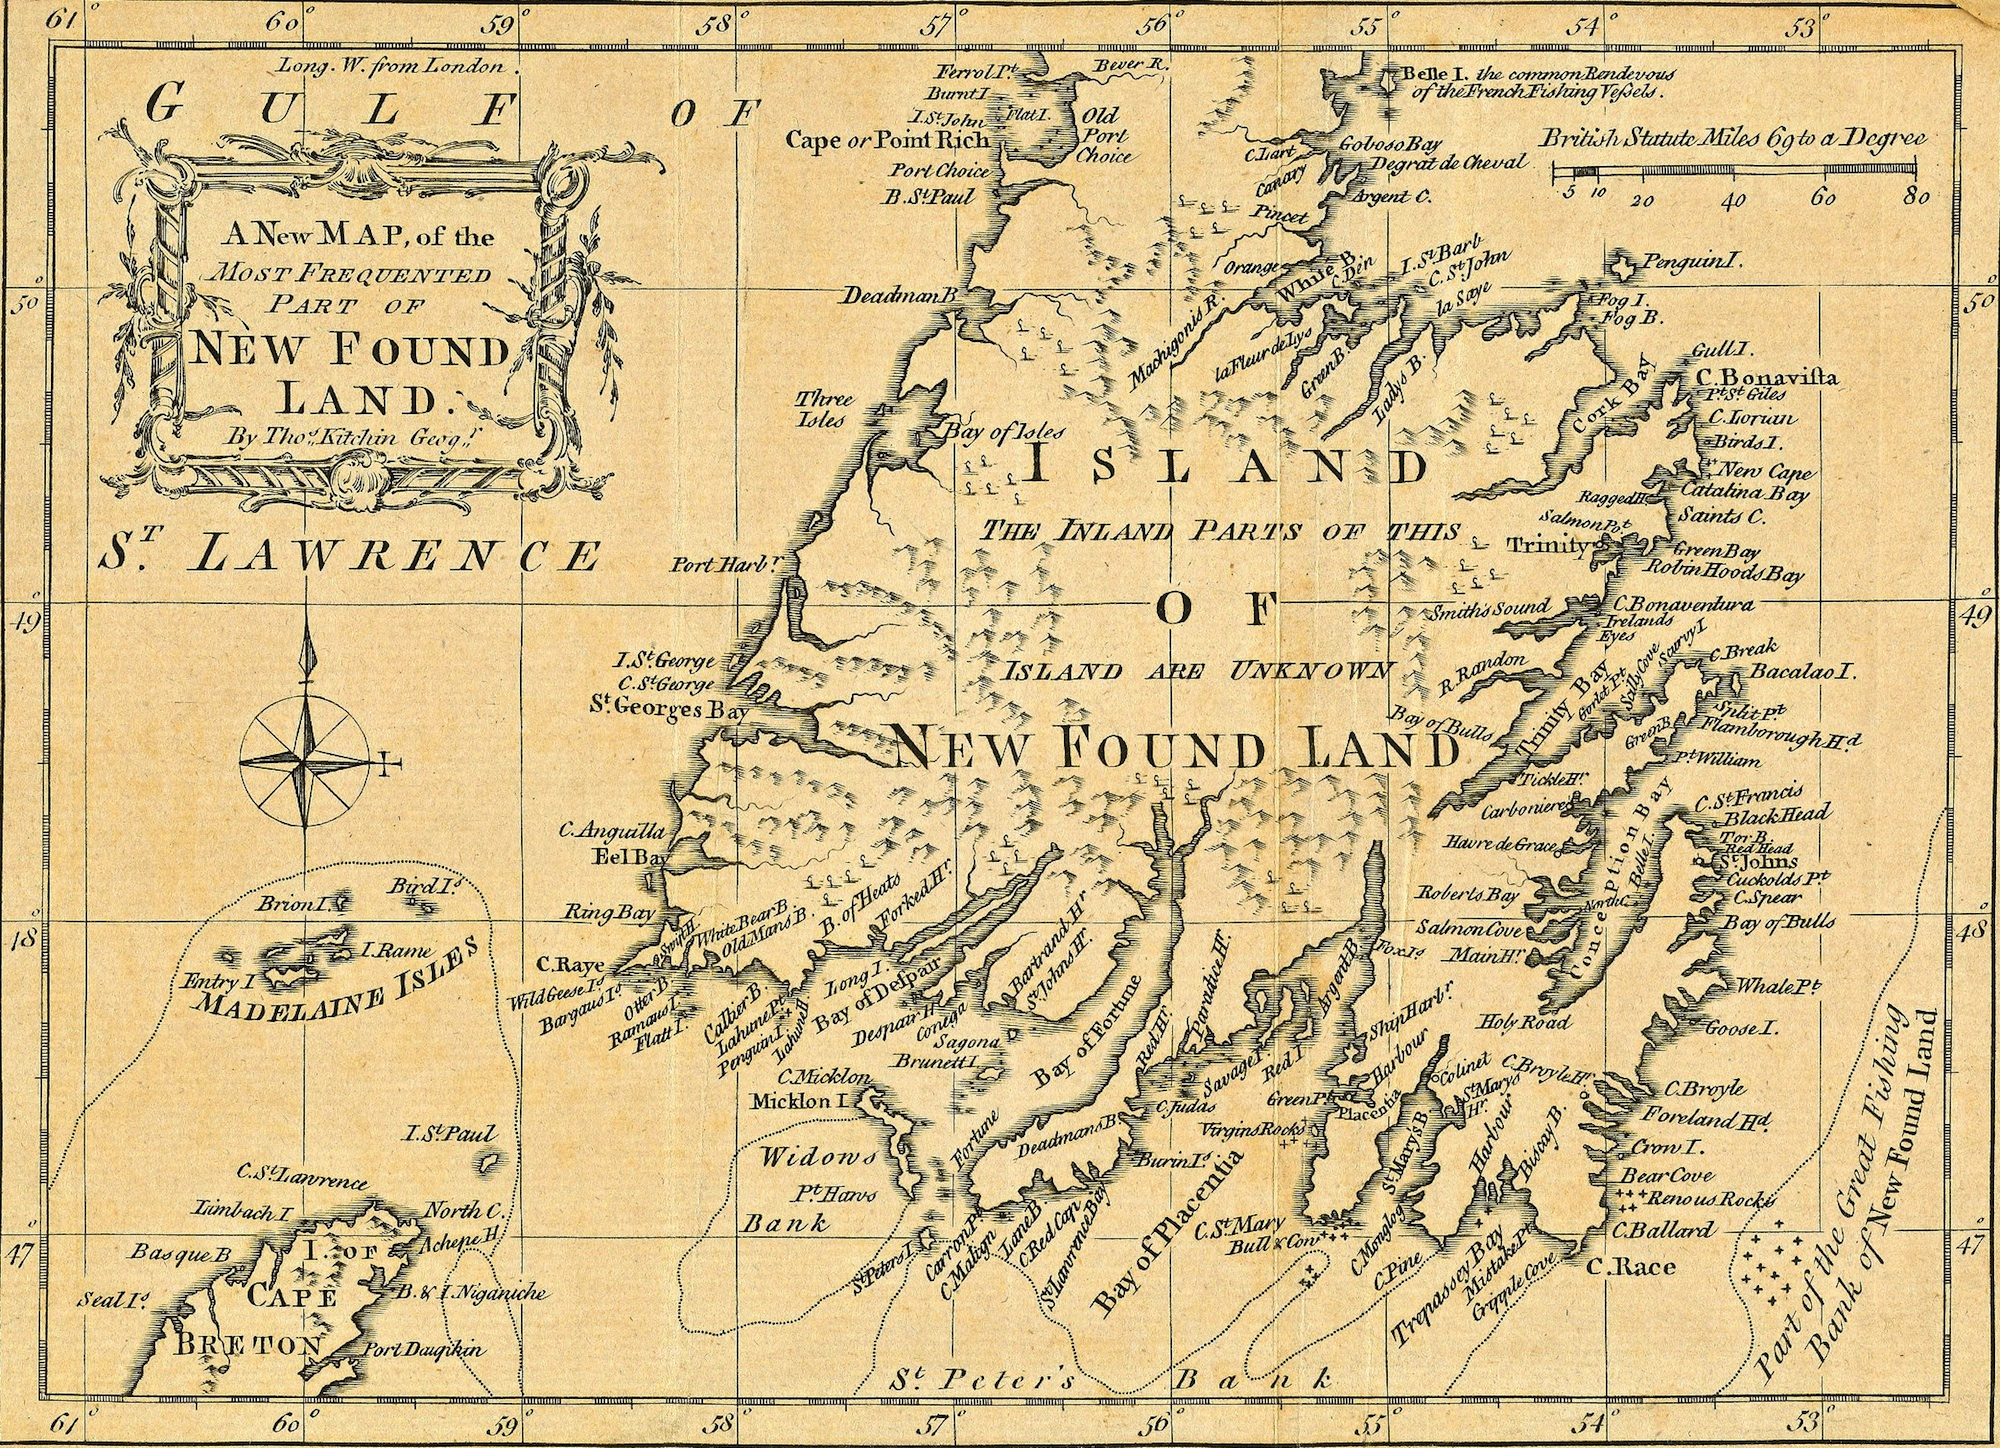 most-frequented-parts-of-newfoundland.jpg